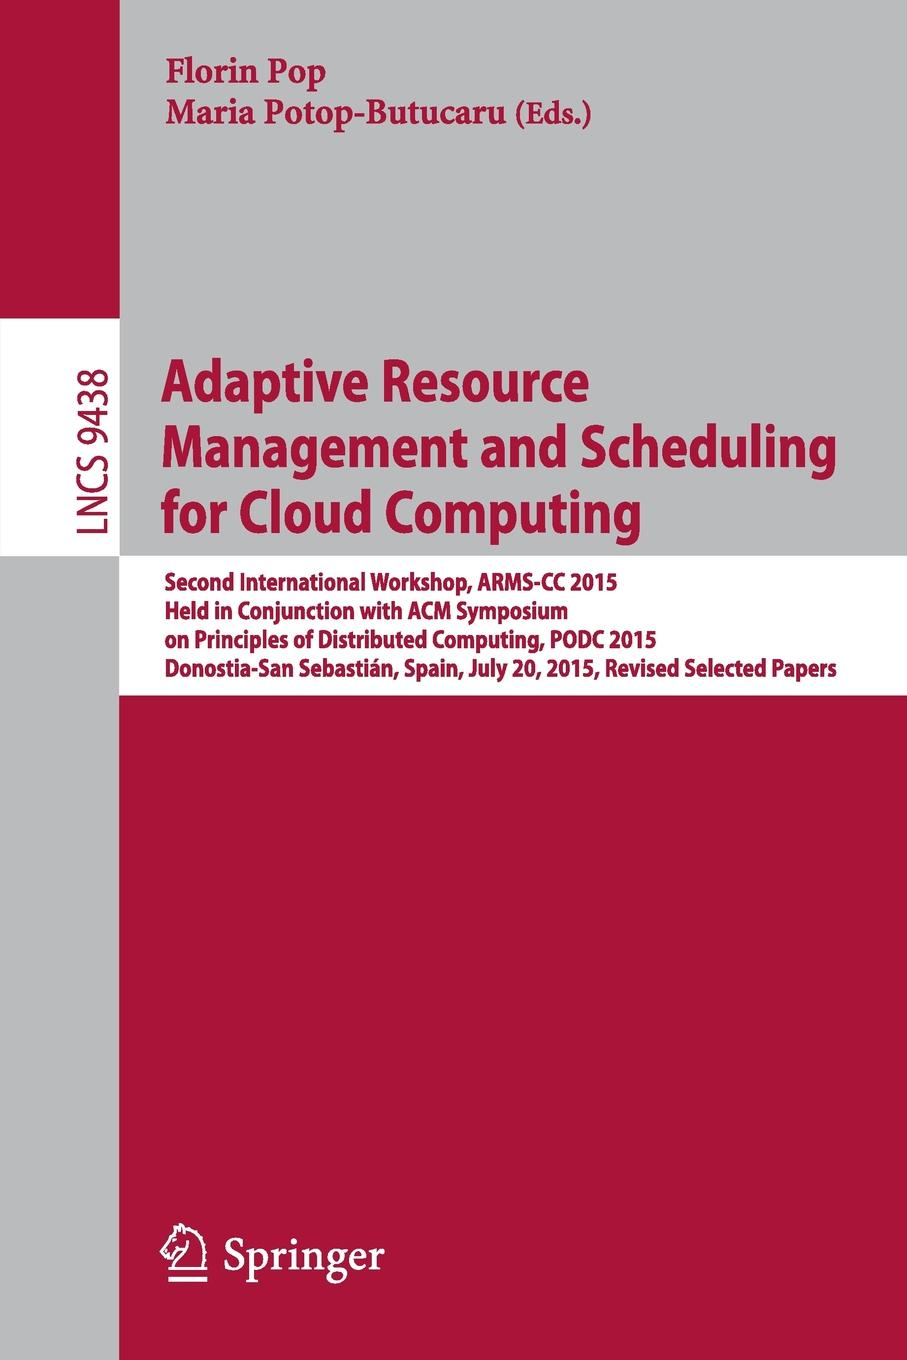 Adaptive Resource Management and Scheduling for Cloud Computing. Second International Workshop, ARMS-CC 2015, Held in Conjunction with ACM Symposium on Principles of Distributed Computing, PODC 2015, Donostia-San Sebastian, Spain, July ... цена в Москве и Питере